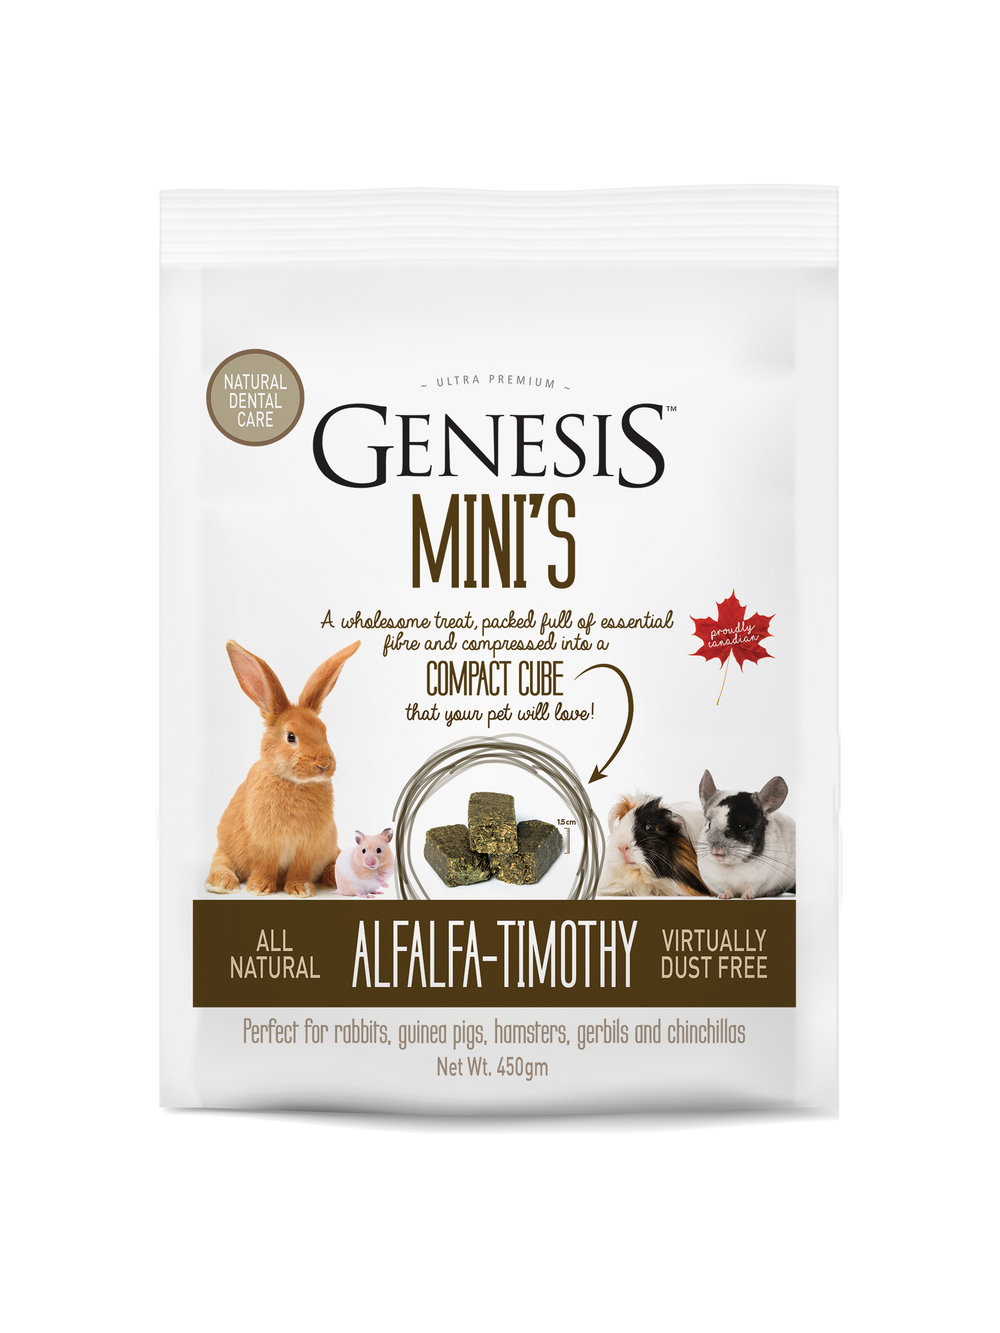 Genesis Mini's - Alfalfa-Timothy - ALL NATURAL SUN-CURED HAY60% ALFALFA, 40% TIMOTHYThe perfect wholesome treat, packed full of essential fibre and compressed into a compact cube that your pet will love!